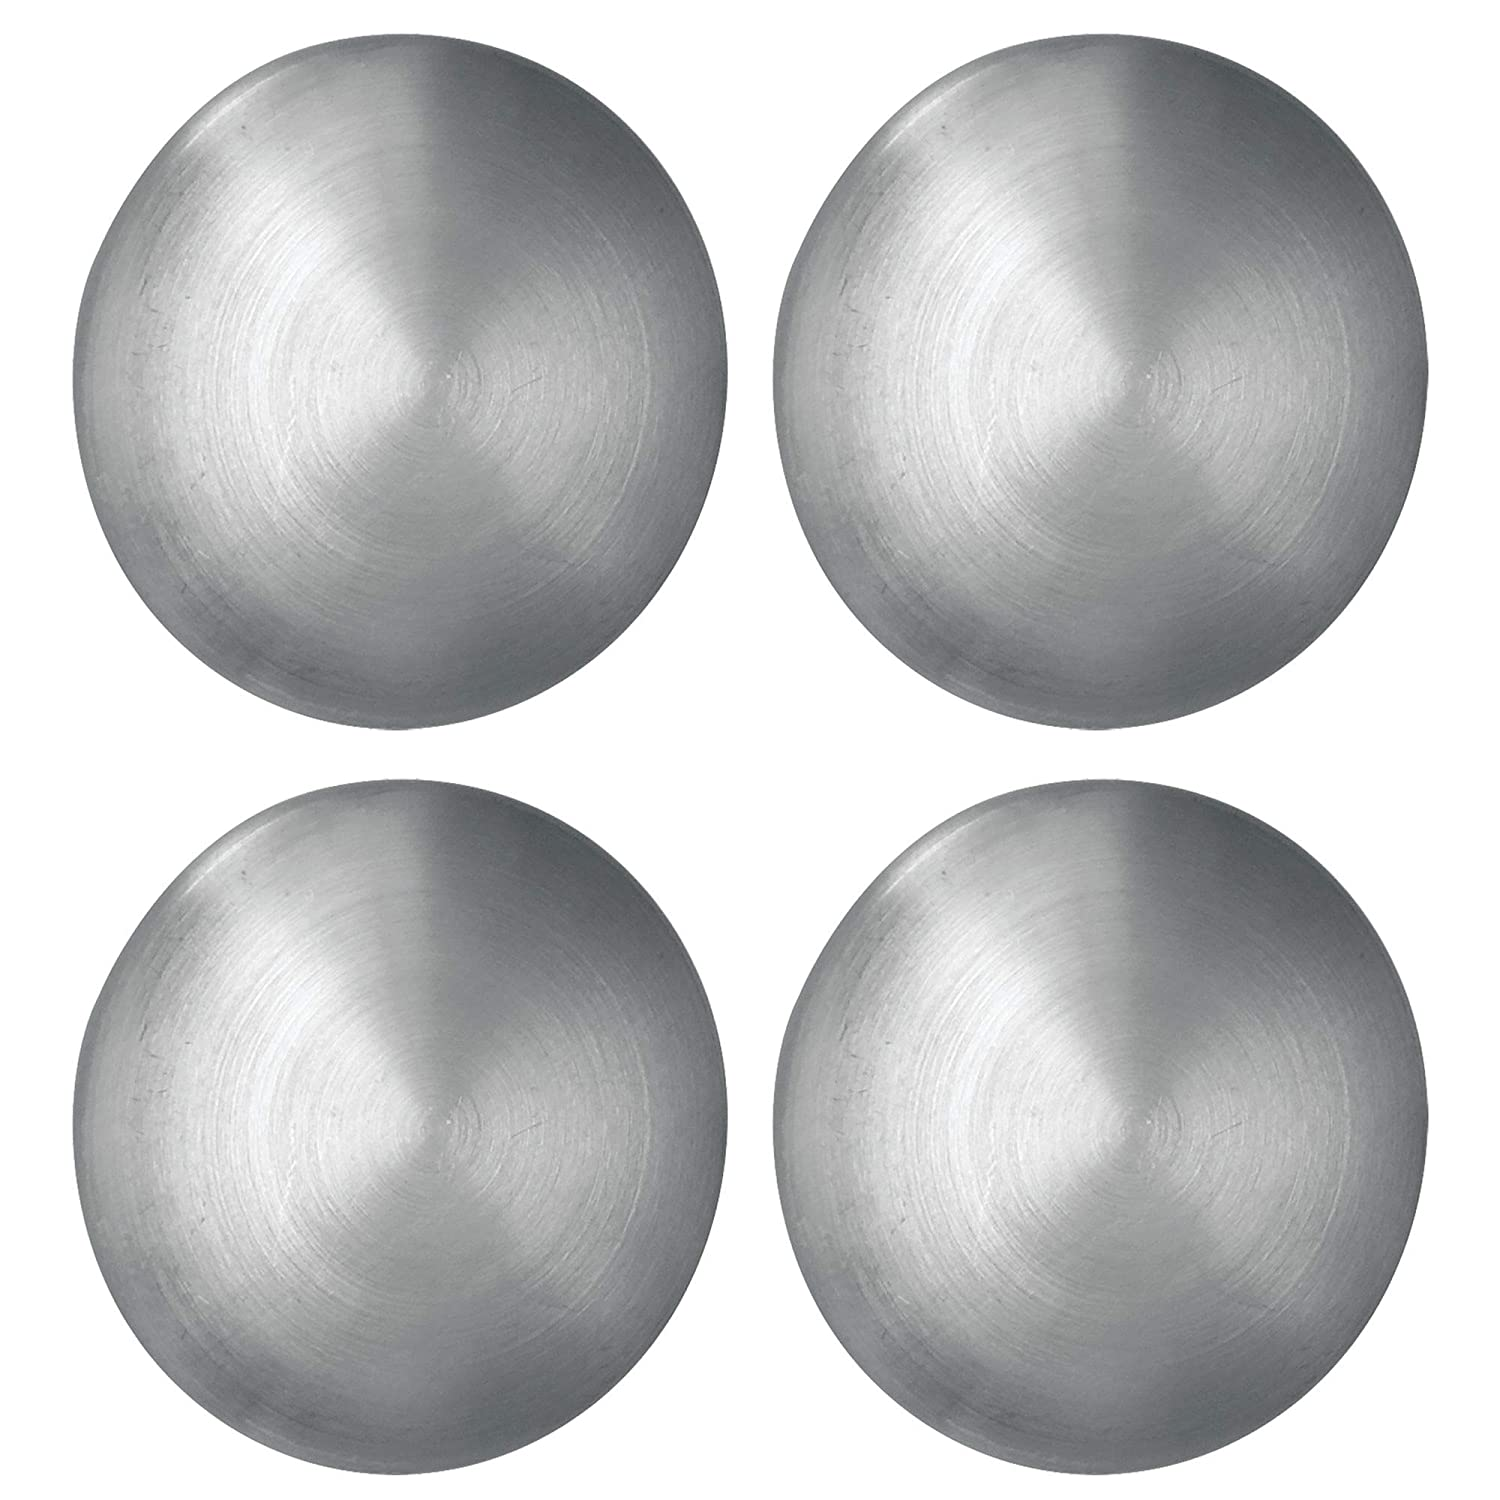 mDesign Modern Kitchen Round Disc Dots Circle Fridge Refrigerator Door Heavy duty Metal Magnetic Clips for Photos, Notes, Chip Bags Office - Set of 4, Brushed Stainless Steel